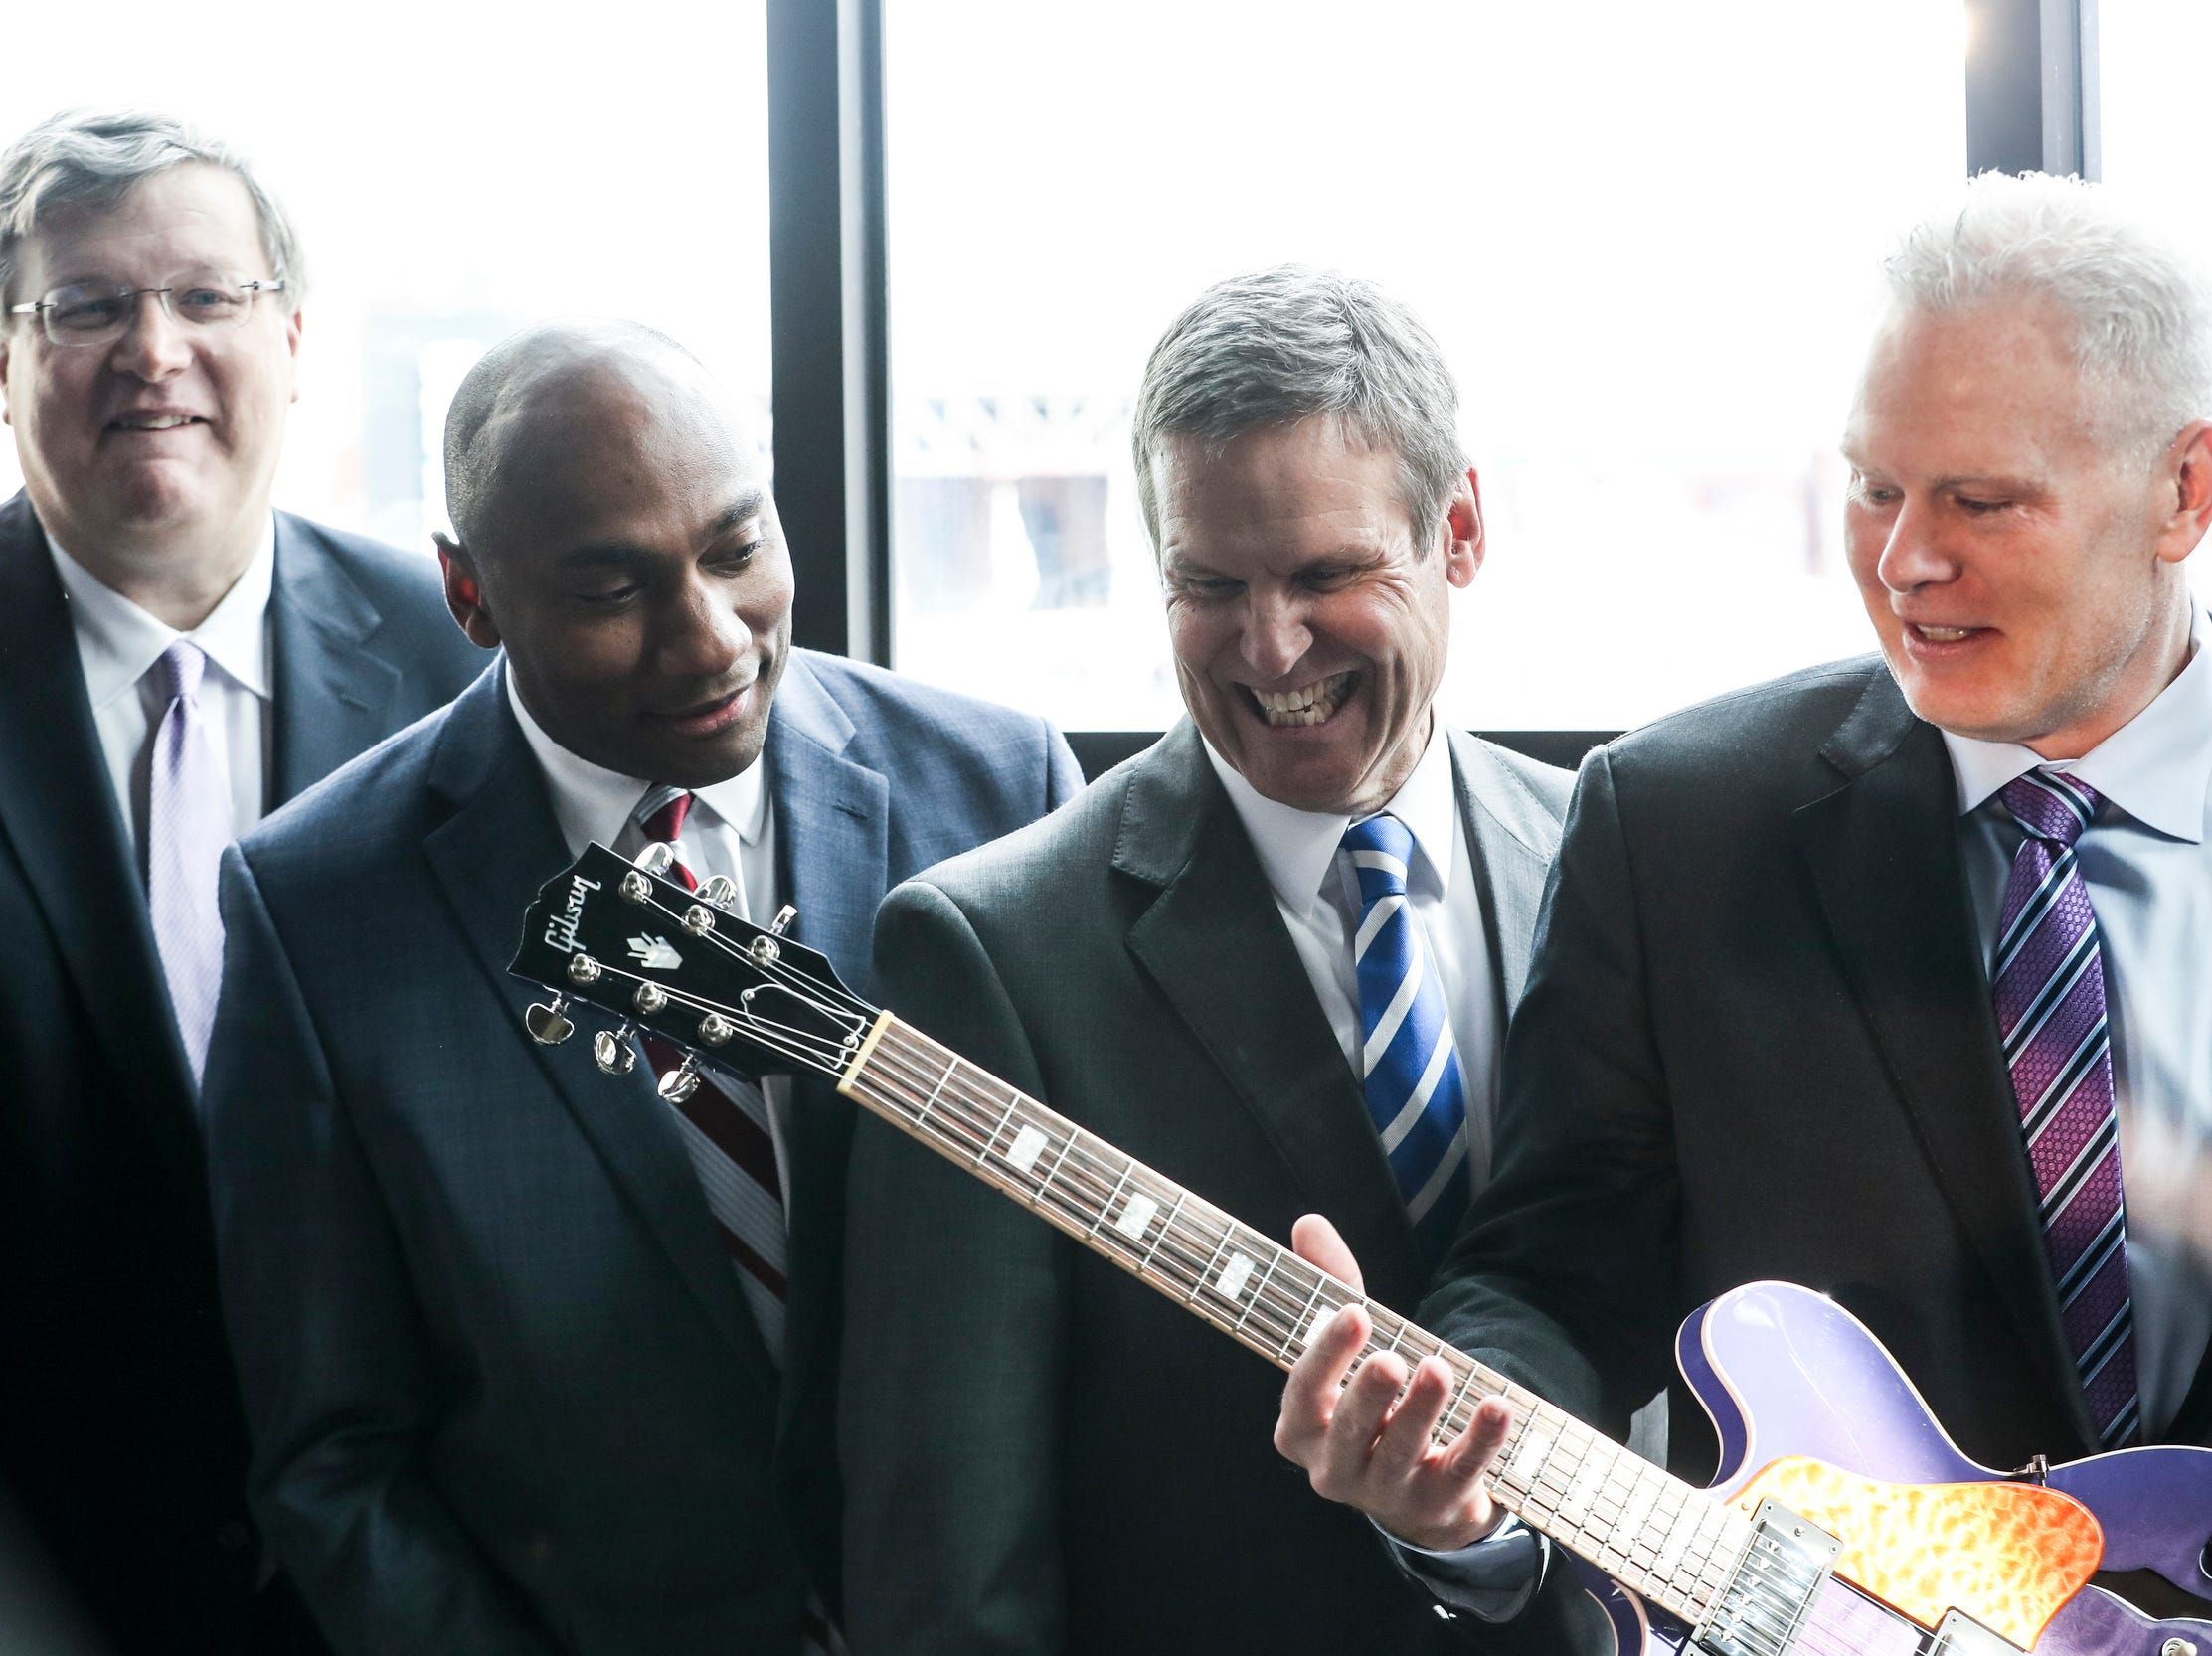 Memphis Mayor Jim Strickland, left, Shelby County Mayor Lee Harris, Gov. Bill Lee and FedEx Logistics CEO Richard Smith pose for photos during the announcement Feb. 12, 2019, that FedEx Logistics is relocating to the Gibson Guitar building.